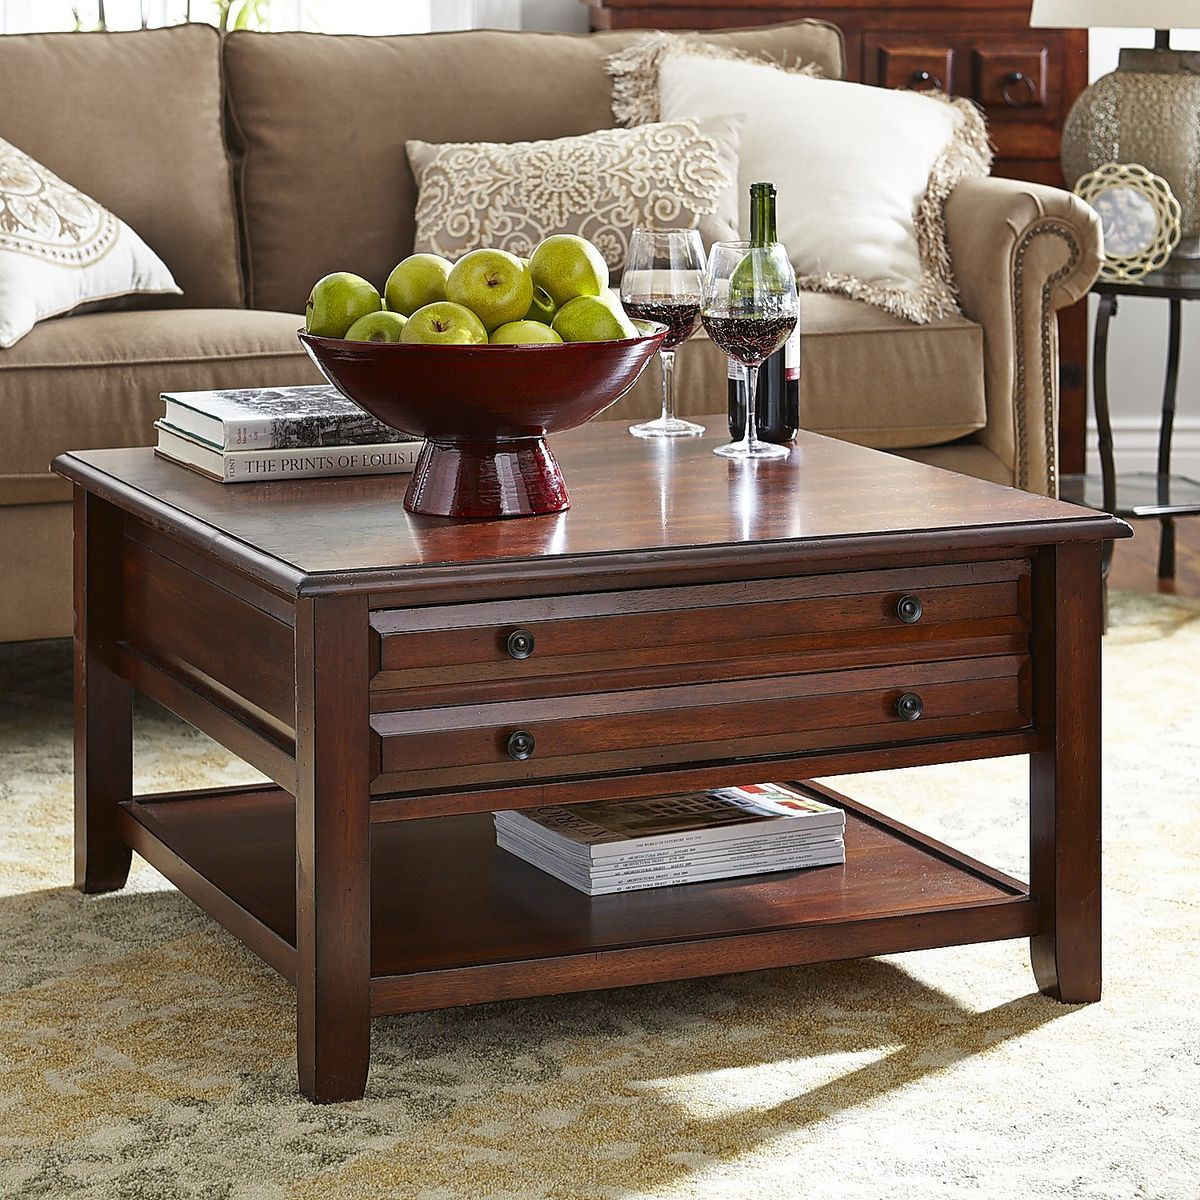 Anywhere Square Coffee Table Tuscan Brown Pier 1 Imports Coffee Table Tuscan Decorating Mediterranean Home Decor